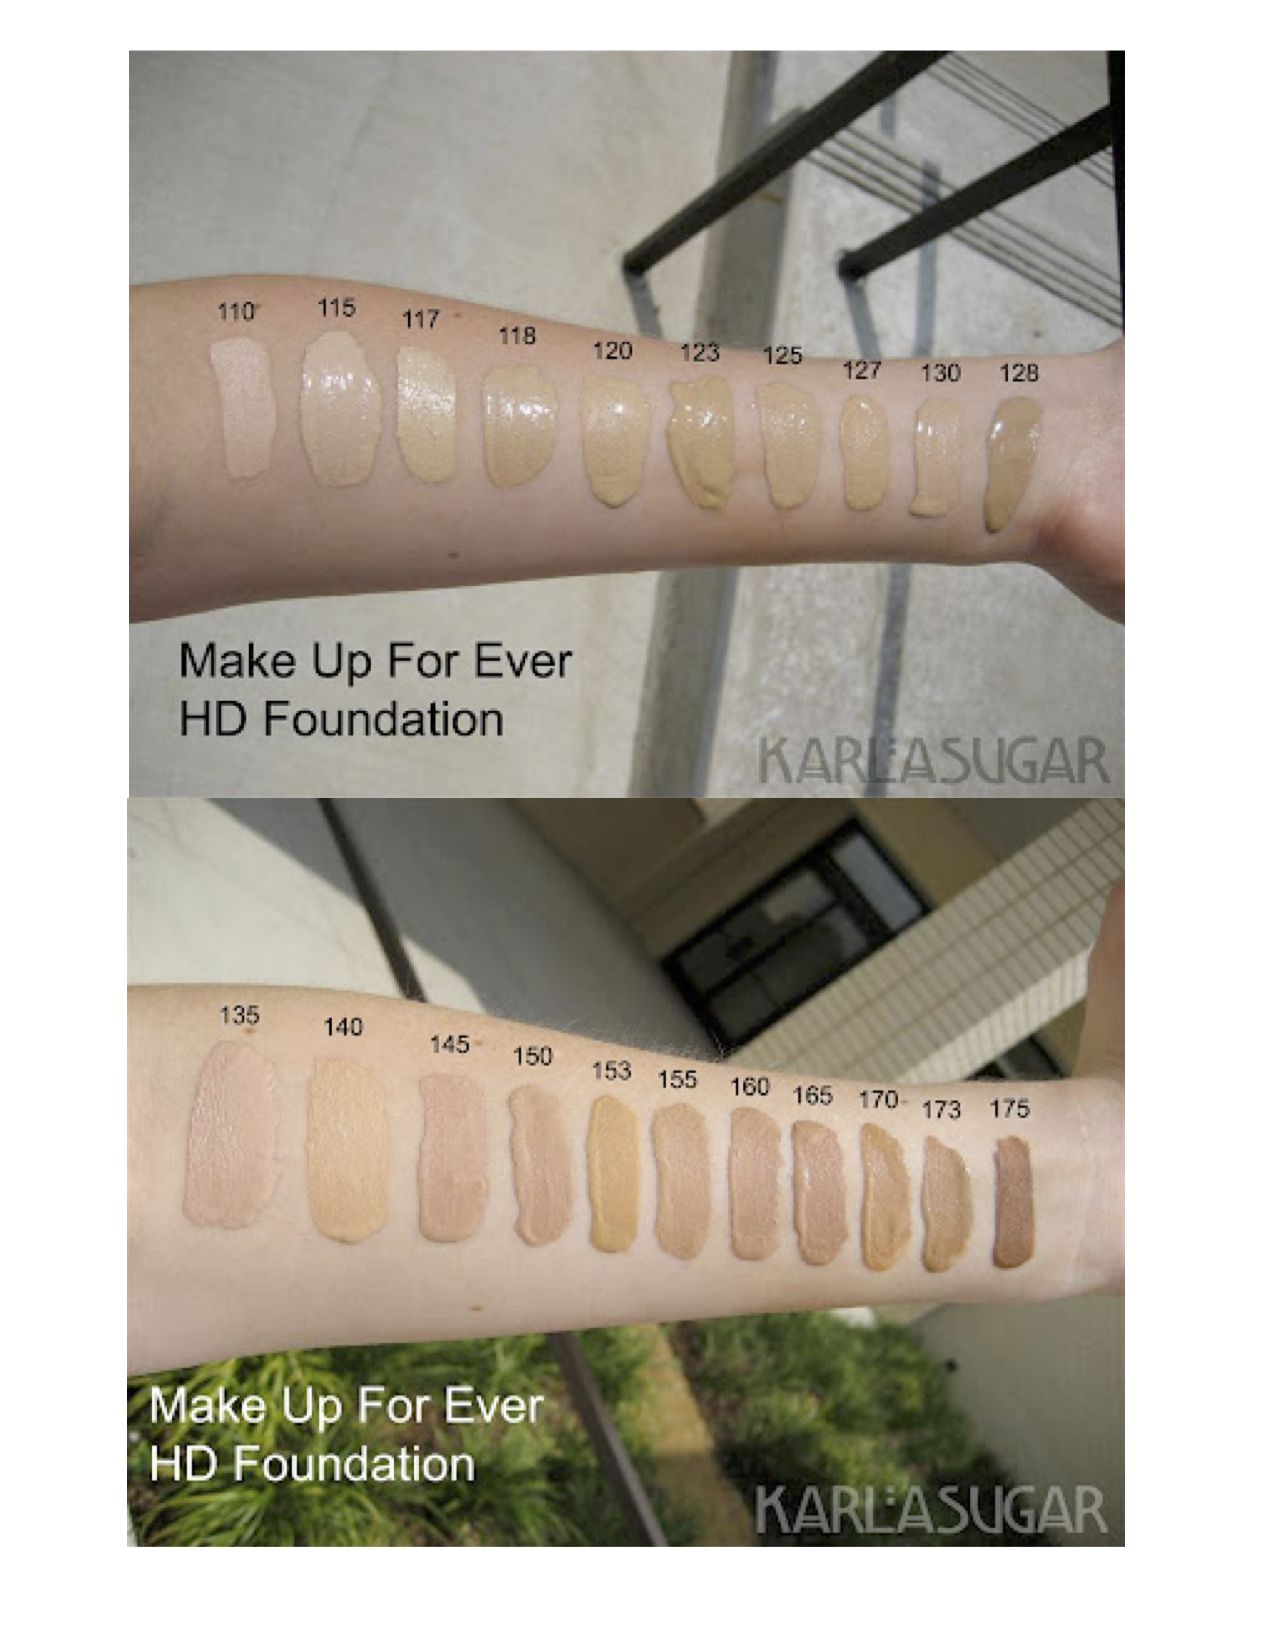 Make Up For Ever HD Foundation Makeup Swatches